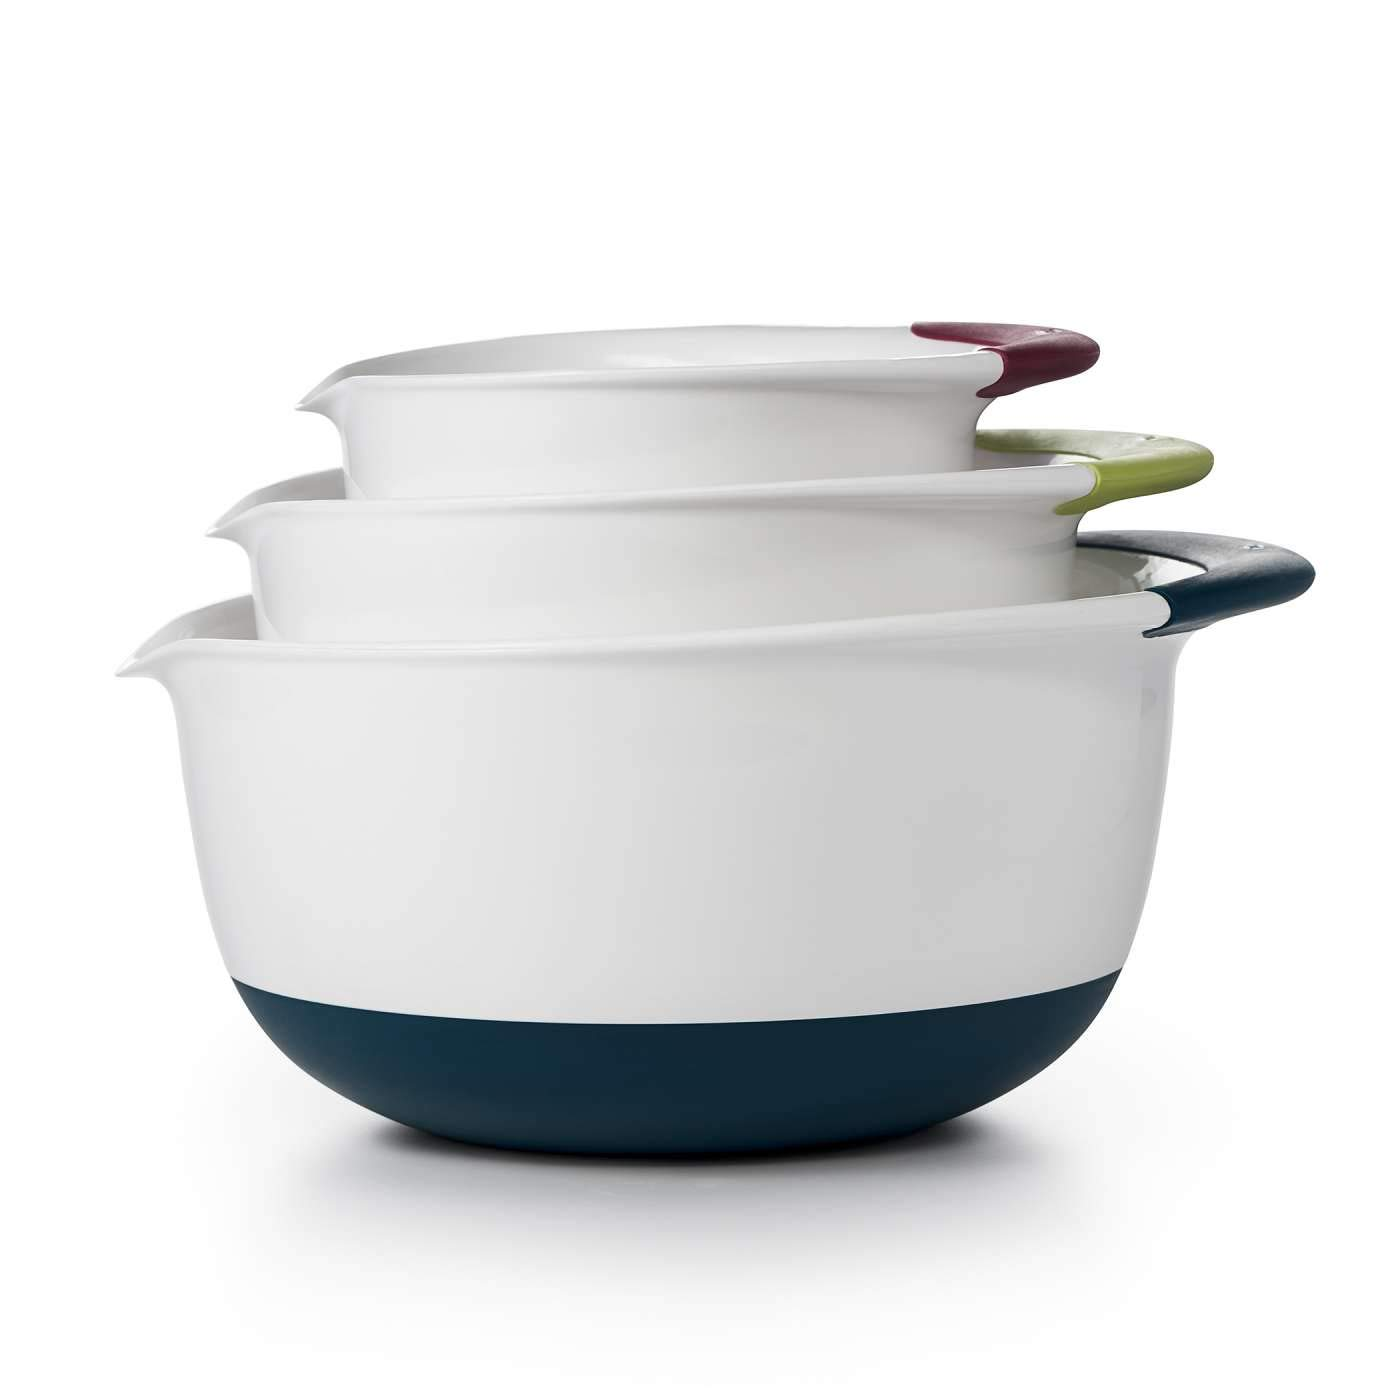 OXO Good Grips 3-piece Mixing Bowl Set, White Bowls with Red/Green/Blue Handles